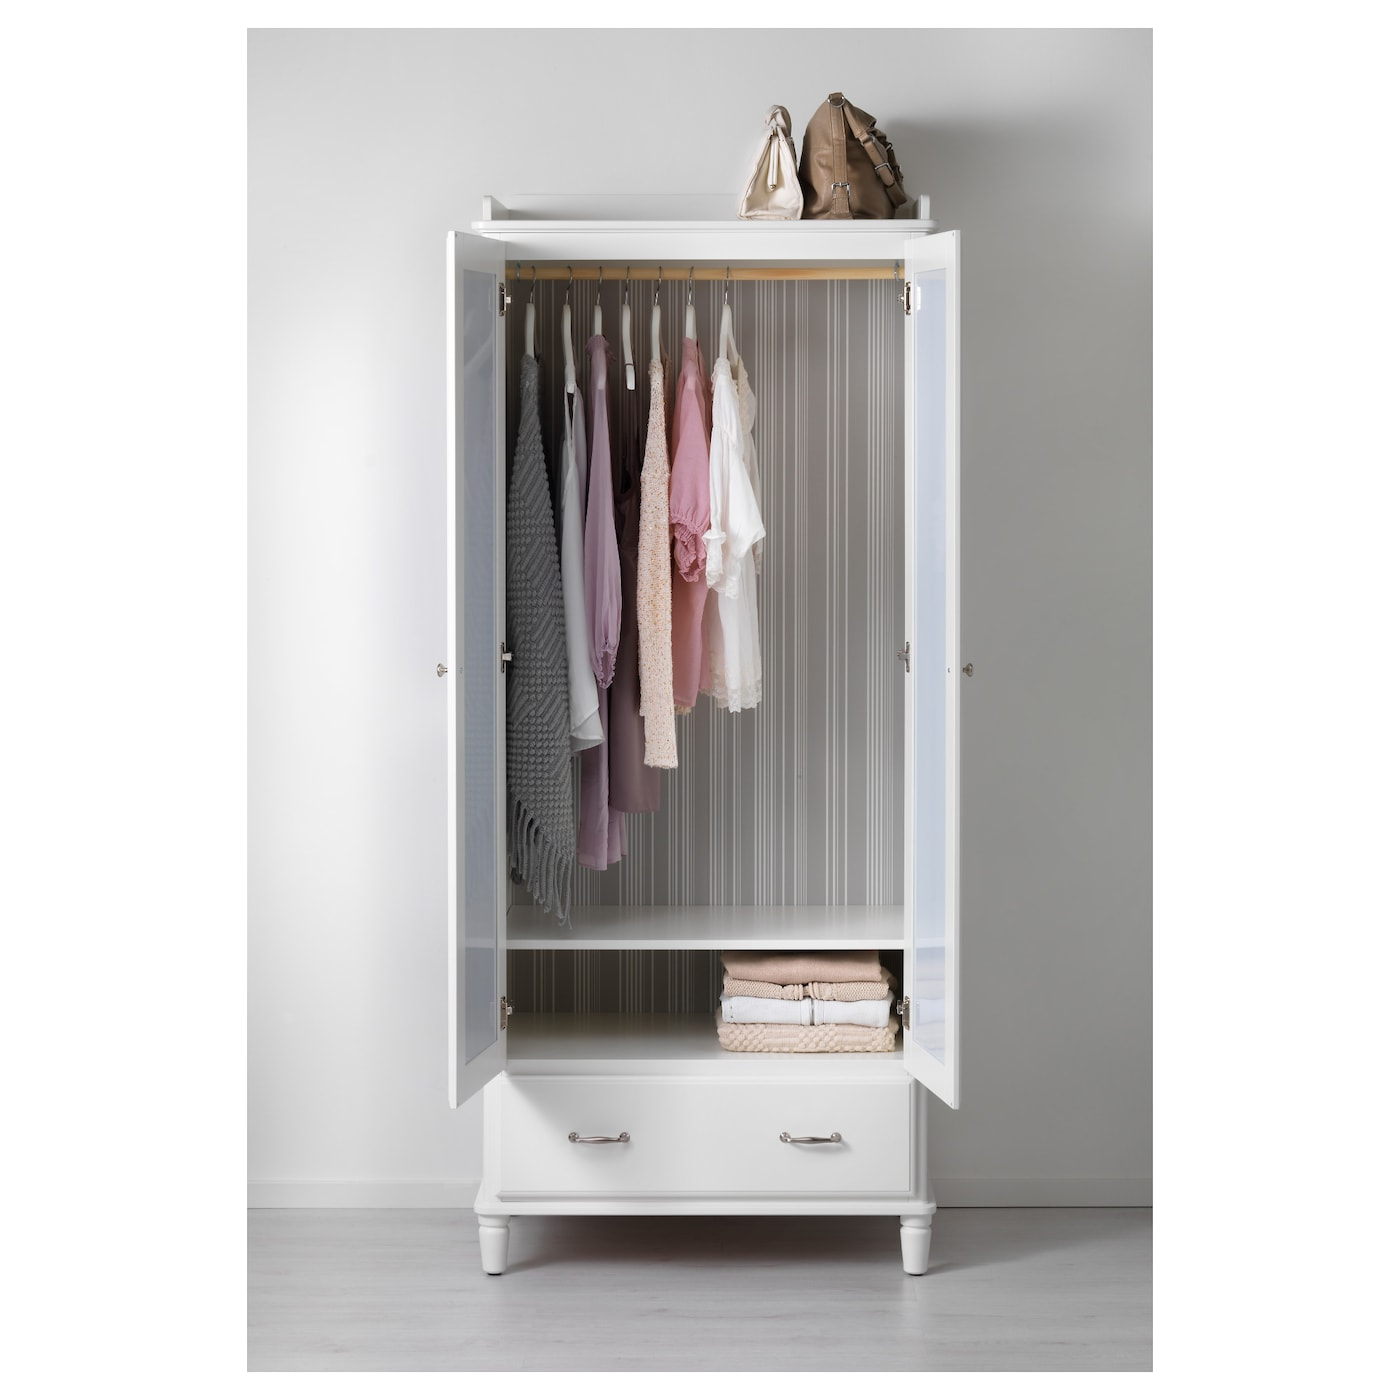 TYSSEDAL Wardrobe White Mirror Glass 88x58x208 Cm